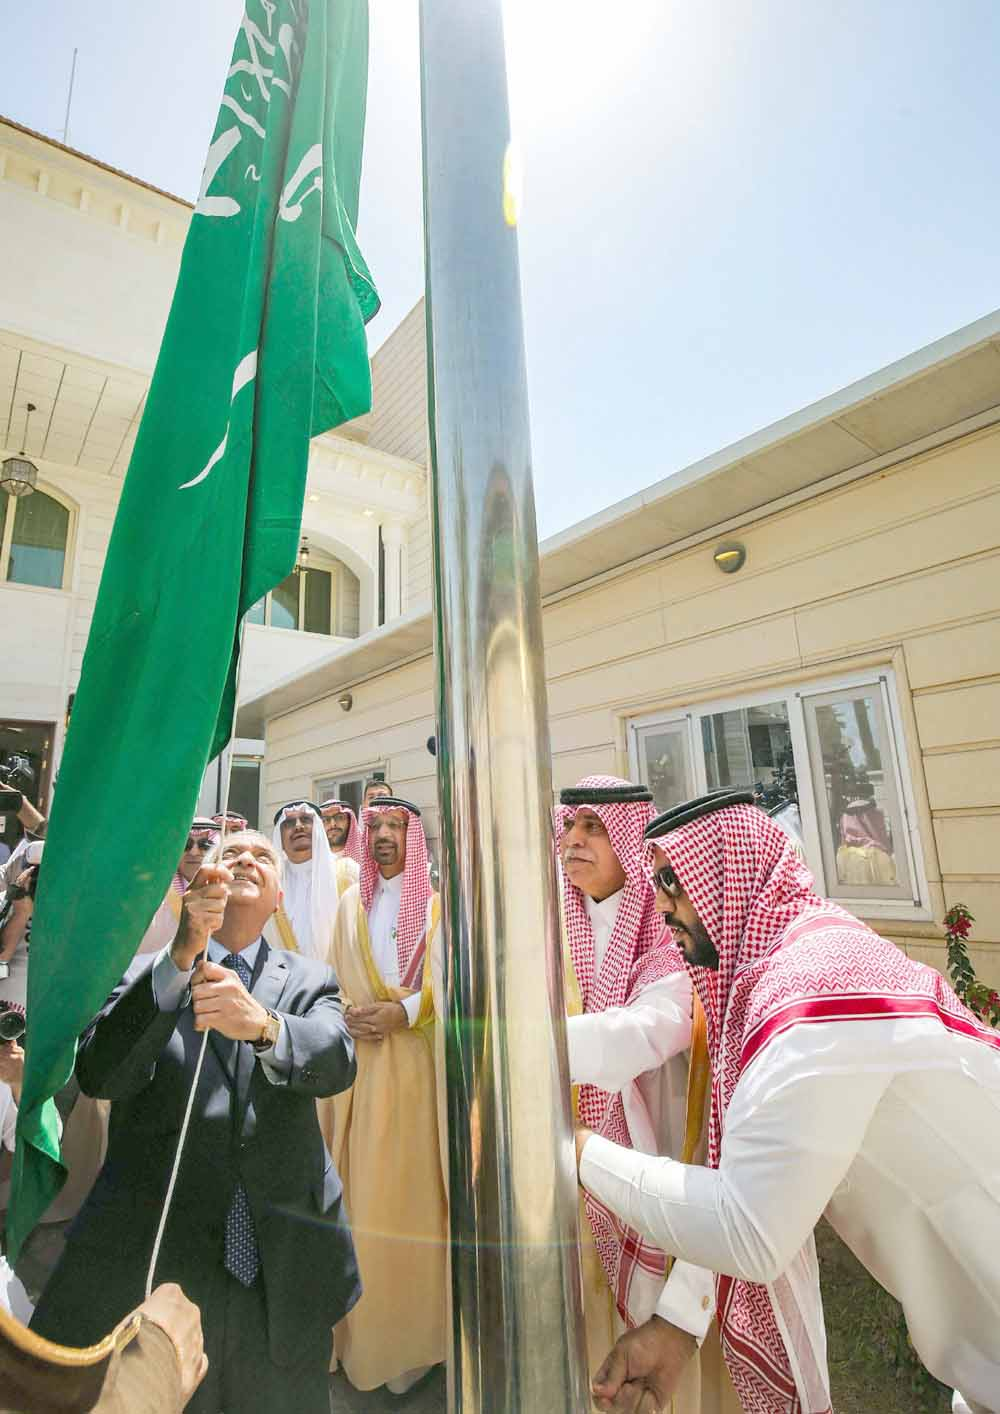 A new phase in relations. Iraqi Foreign Minister Mohammad Ali al-Hakim (C-L) raises the Saudi flag alongside Saudi Trade and Investment Minister Majid al-Qasabi (2nd-R) during the inauguration of the Saudi consulate compound in Baghdad, April 4. (AFP)